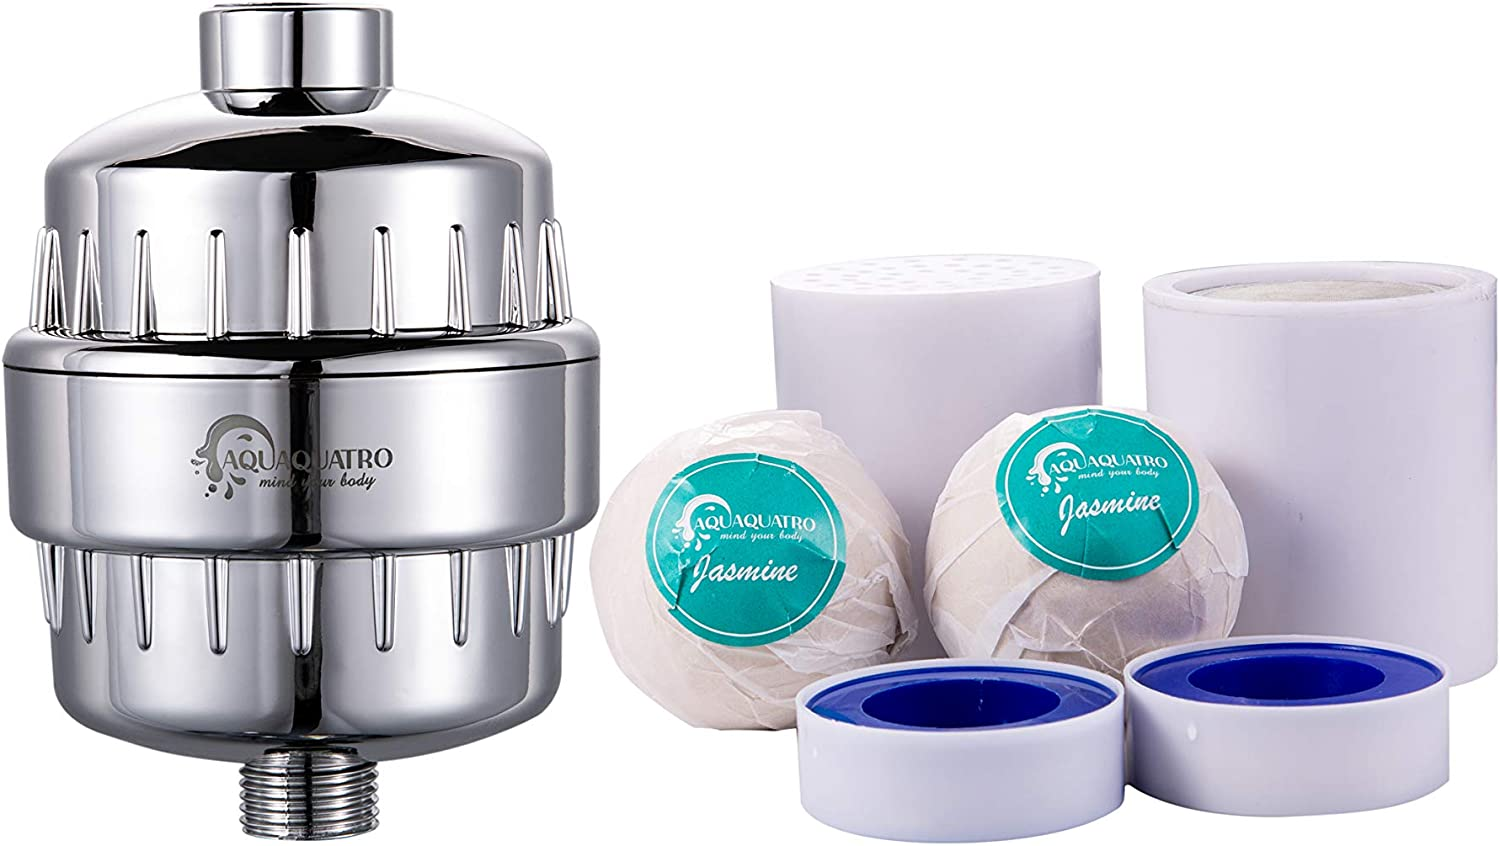 Premium Universal Shower Filter More Bacteria Water Treatment Boosts Skin /& Hair Health by Aquaquatro 15 Stage Shower Water Filter with Extra Cartridge Replacement Removes Chlorine Heavy Metals